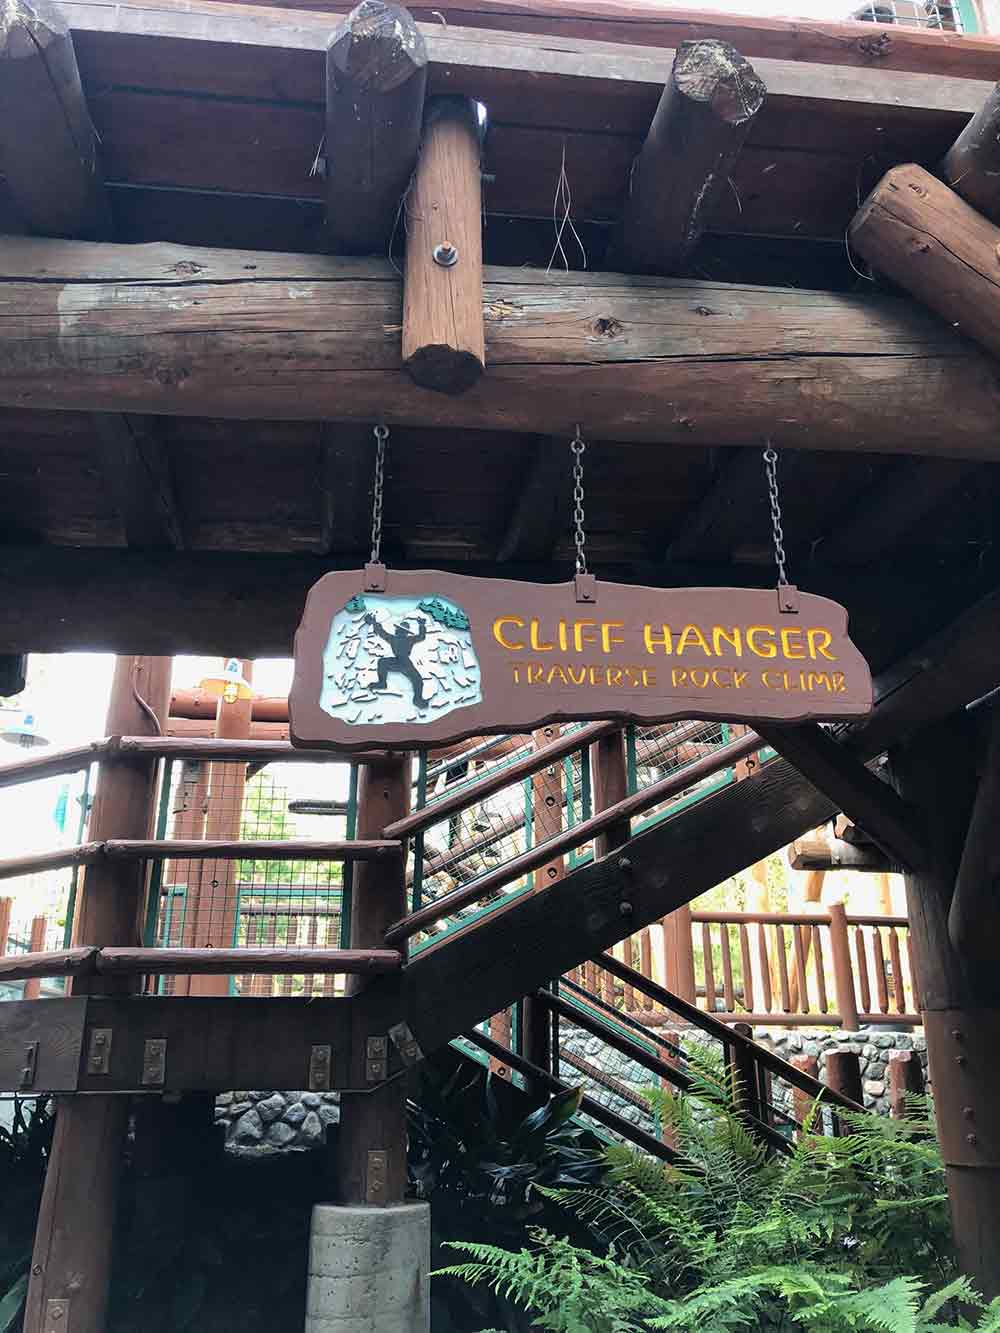 Redwood Creek Challenge Trail Cliff Hanger